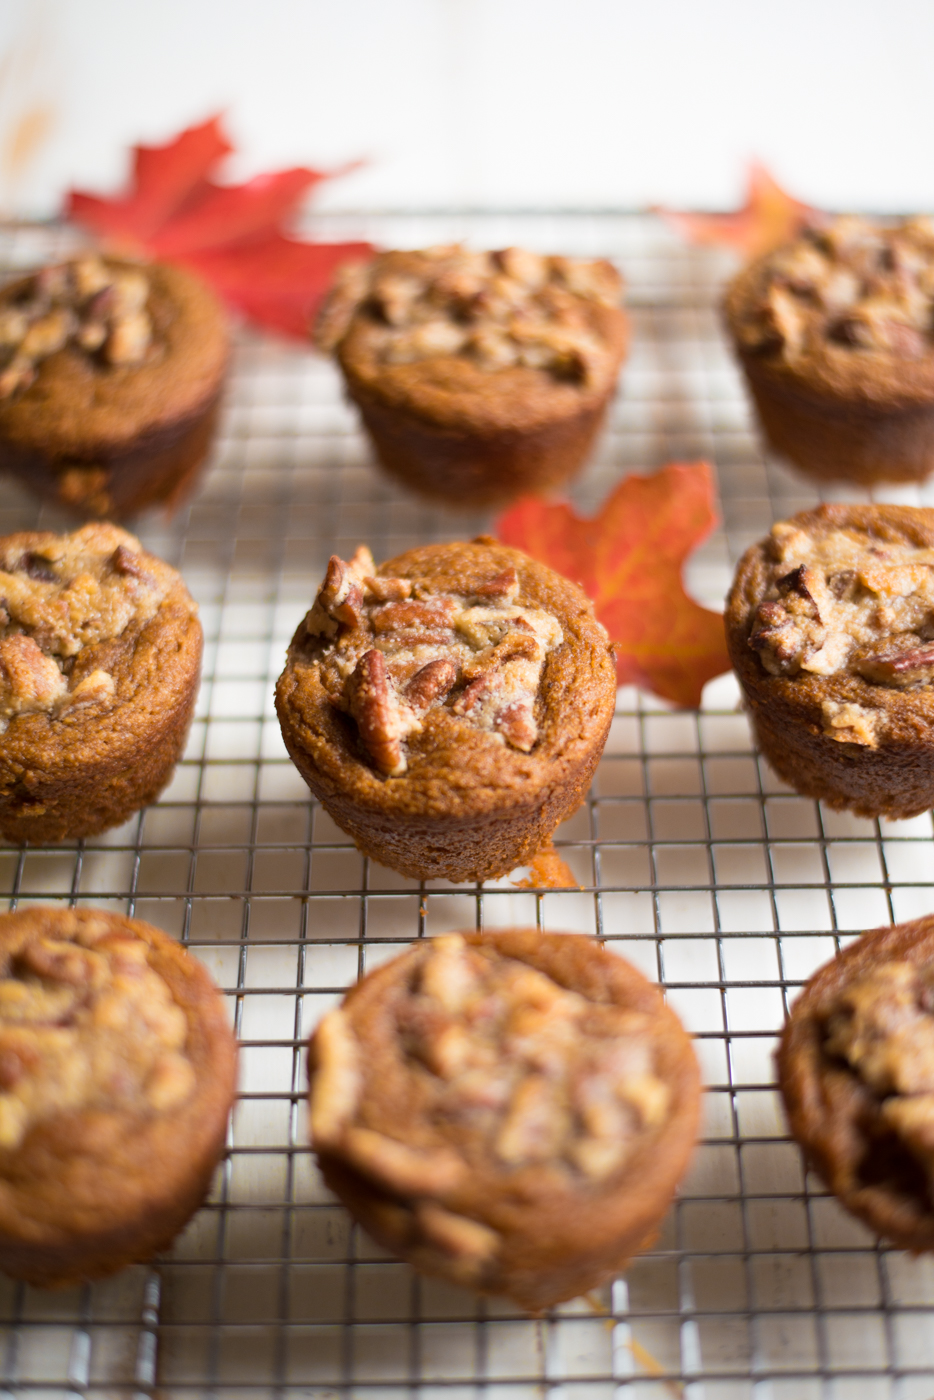 One-Bowl Flourless Sweet Potato Pie Muffins are nourishing, packed with flavor, and the perfect naturally-sweetened treat anytime. A gluten-free, dairy-free, paleo recipe. #realfoodwholelife #realfoodwholeliferecipe #recipe #muffin #paleo #paleorecipe #glutenfree #grainfree #dairyfree #healthy #healthyrecipe #easyrecipe #quickrecipe #sweetpotato #sweetpotatorecipe #muffinrecipe